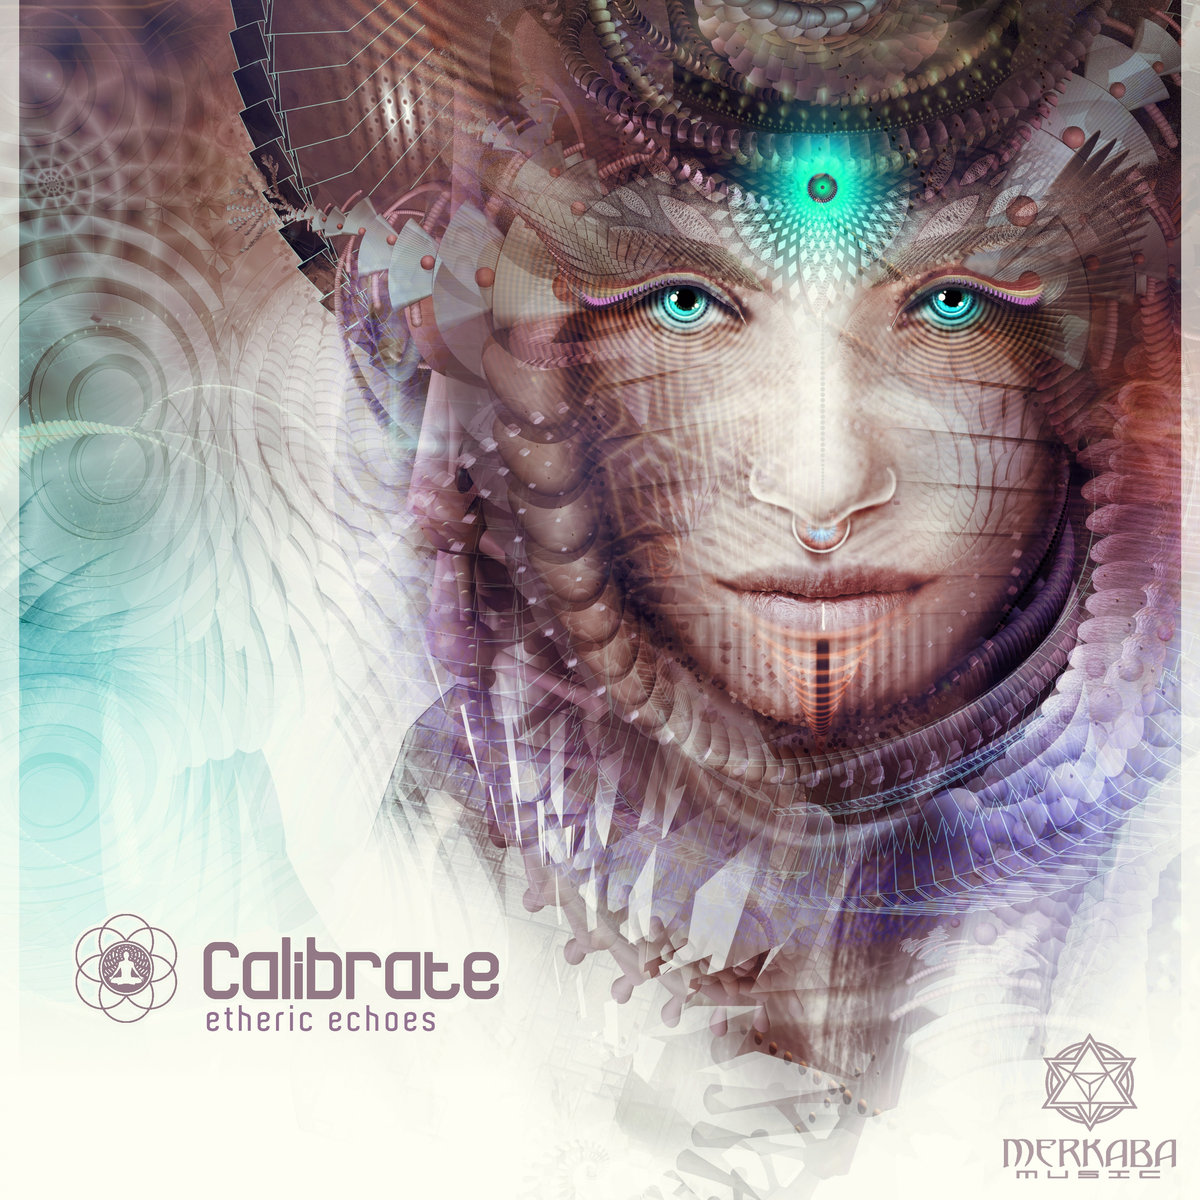 Calibrate - Etheric Echoes (artwork)